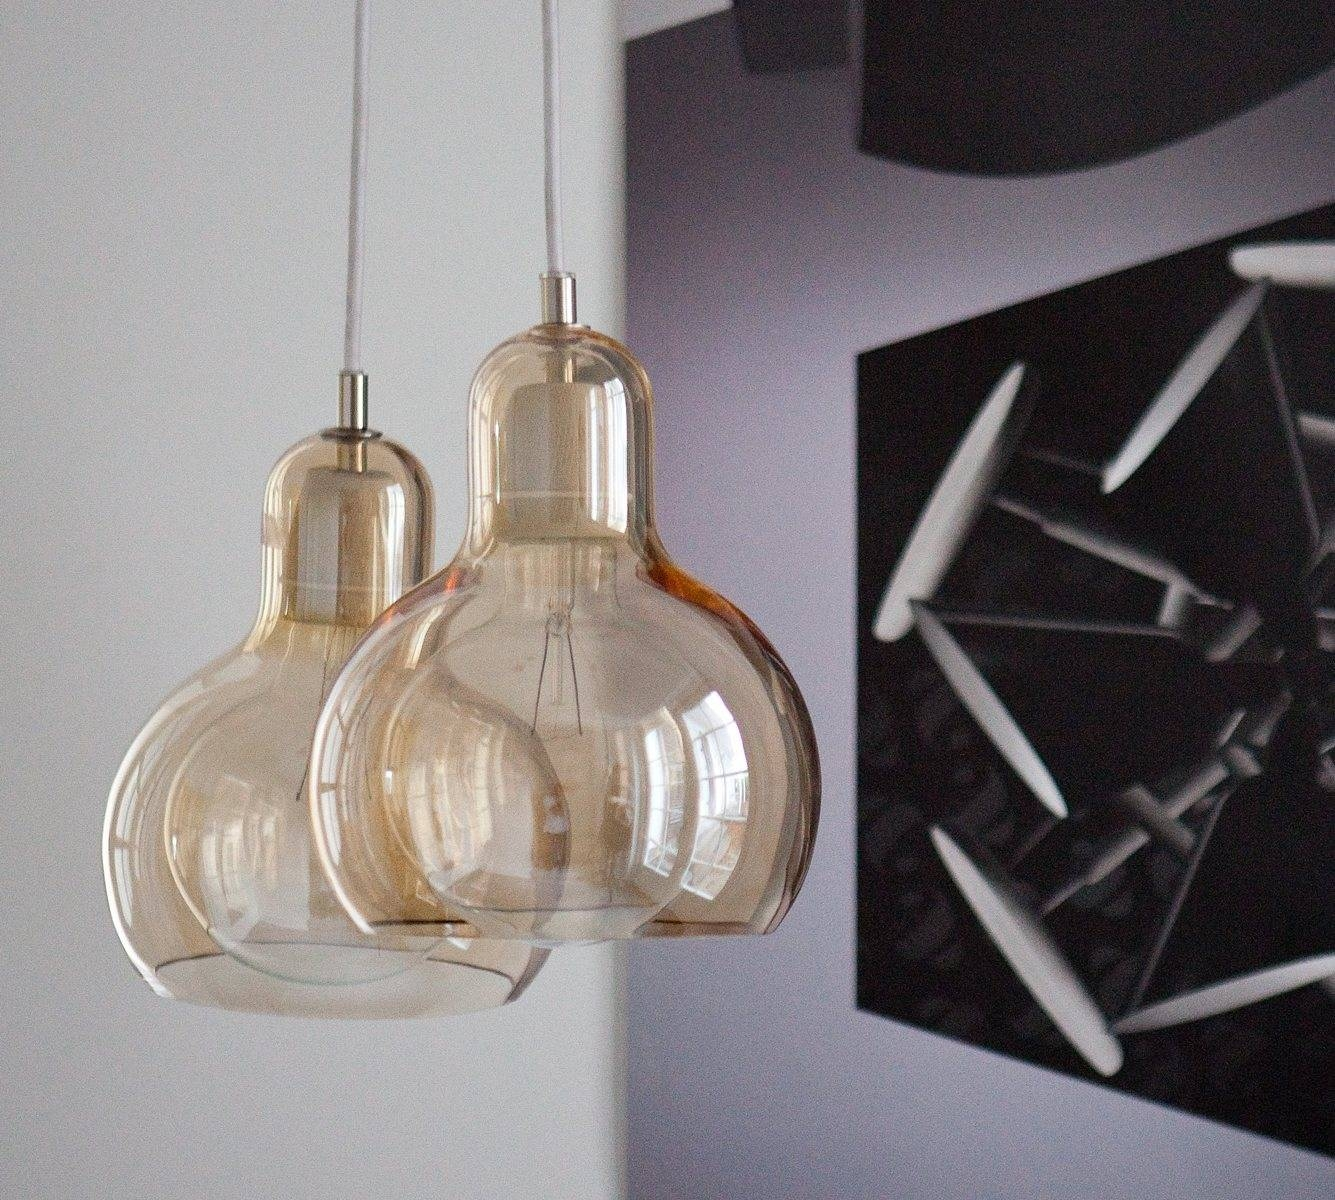 Mega Bulb Sr2Sofie Refer For &tradition | Up Interiors within Mega Bulb Pendant Lights (Image 13 of 15)